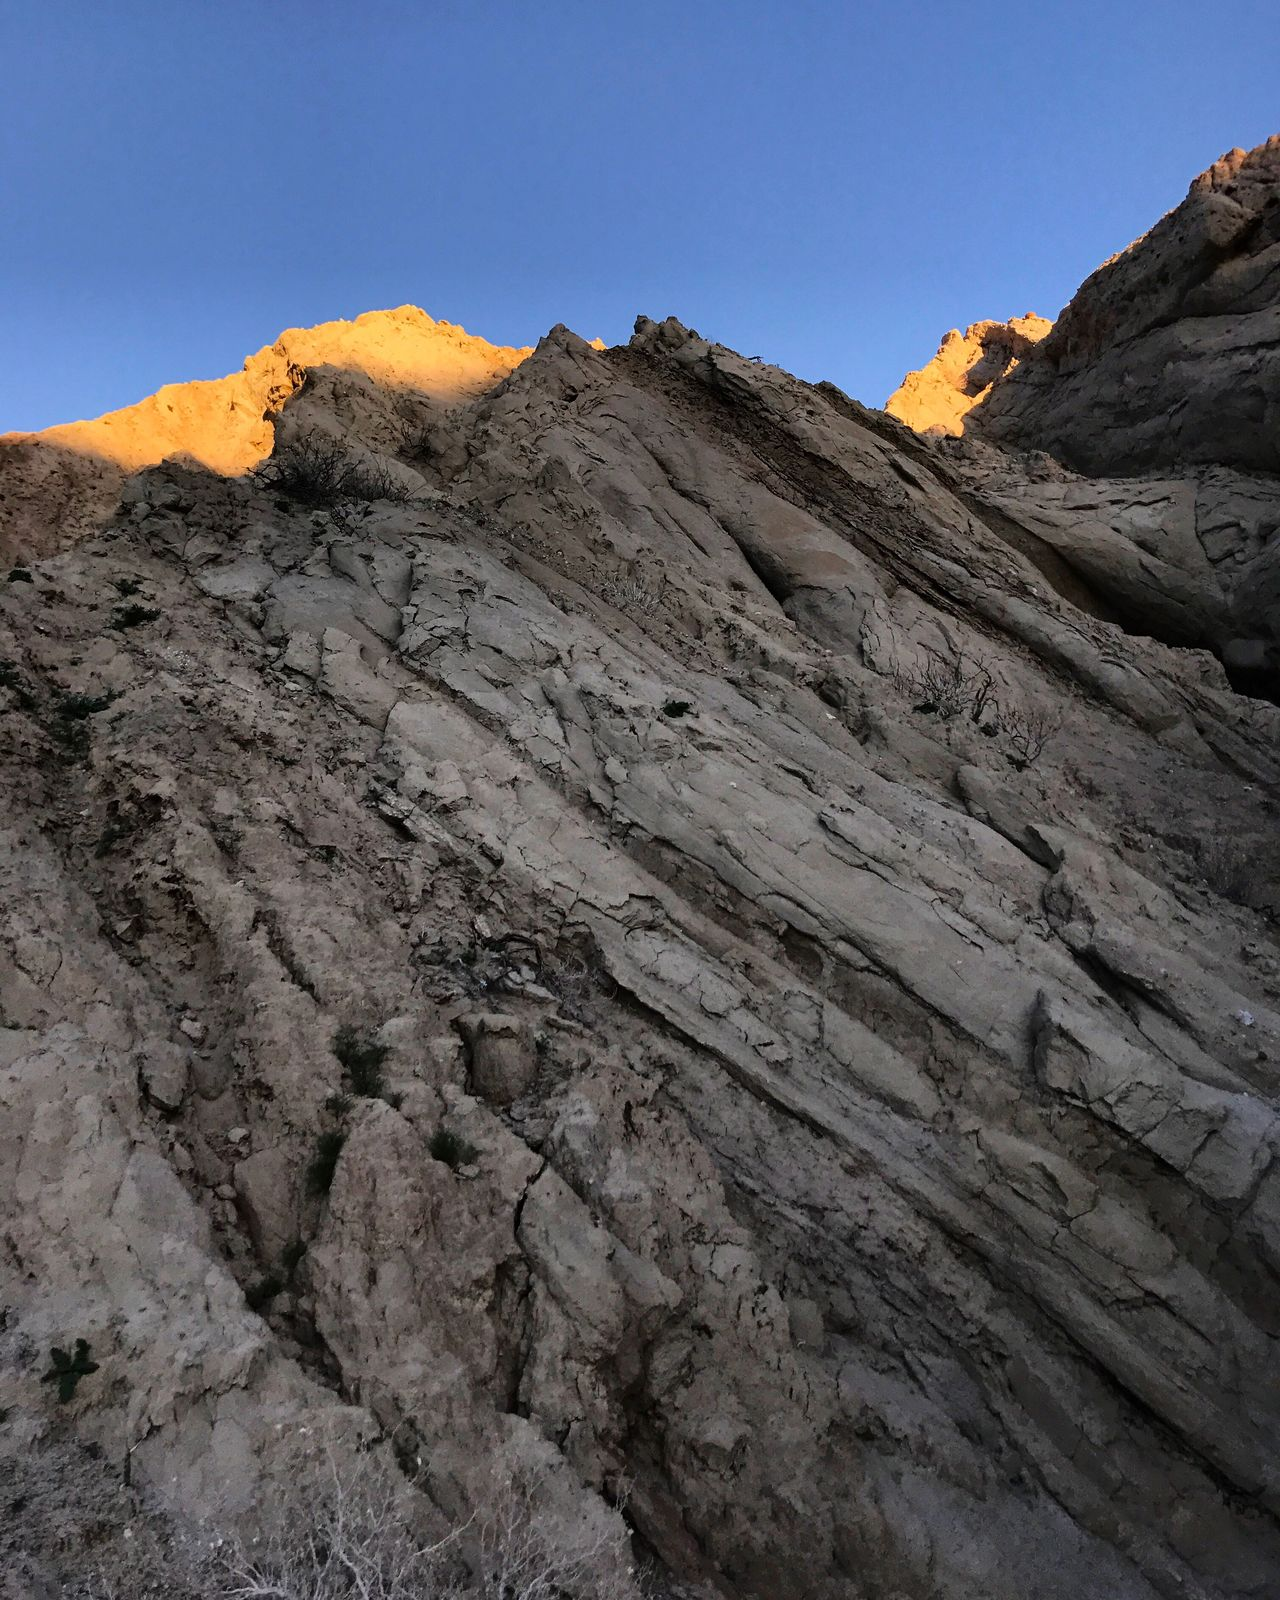 Geology Nature Mountain Beauty In Nature Low Angle View Tranquility Tranquil Scene Scenics Sky Clear Sky Outdoors No People Day Sunset